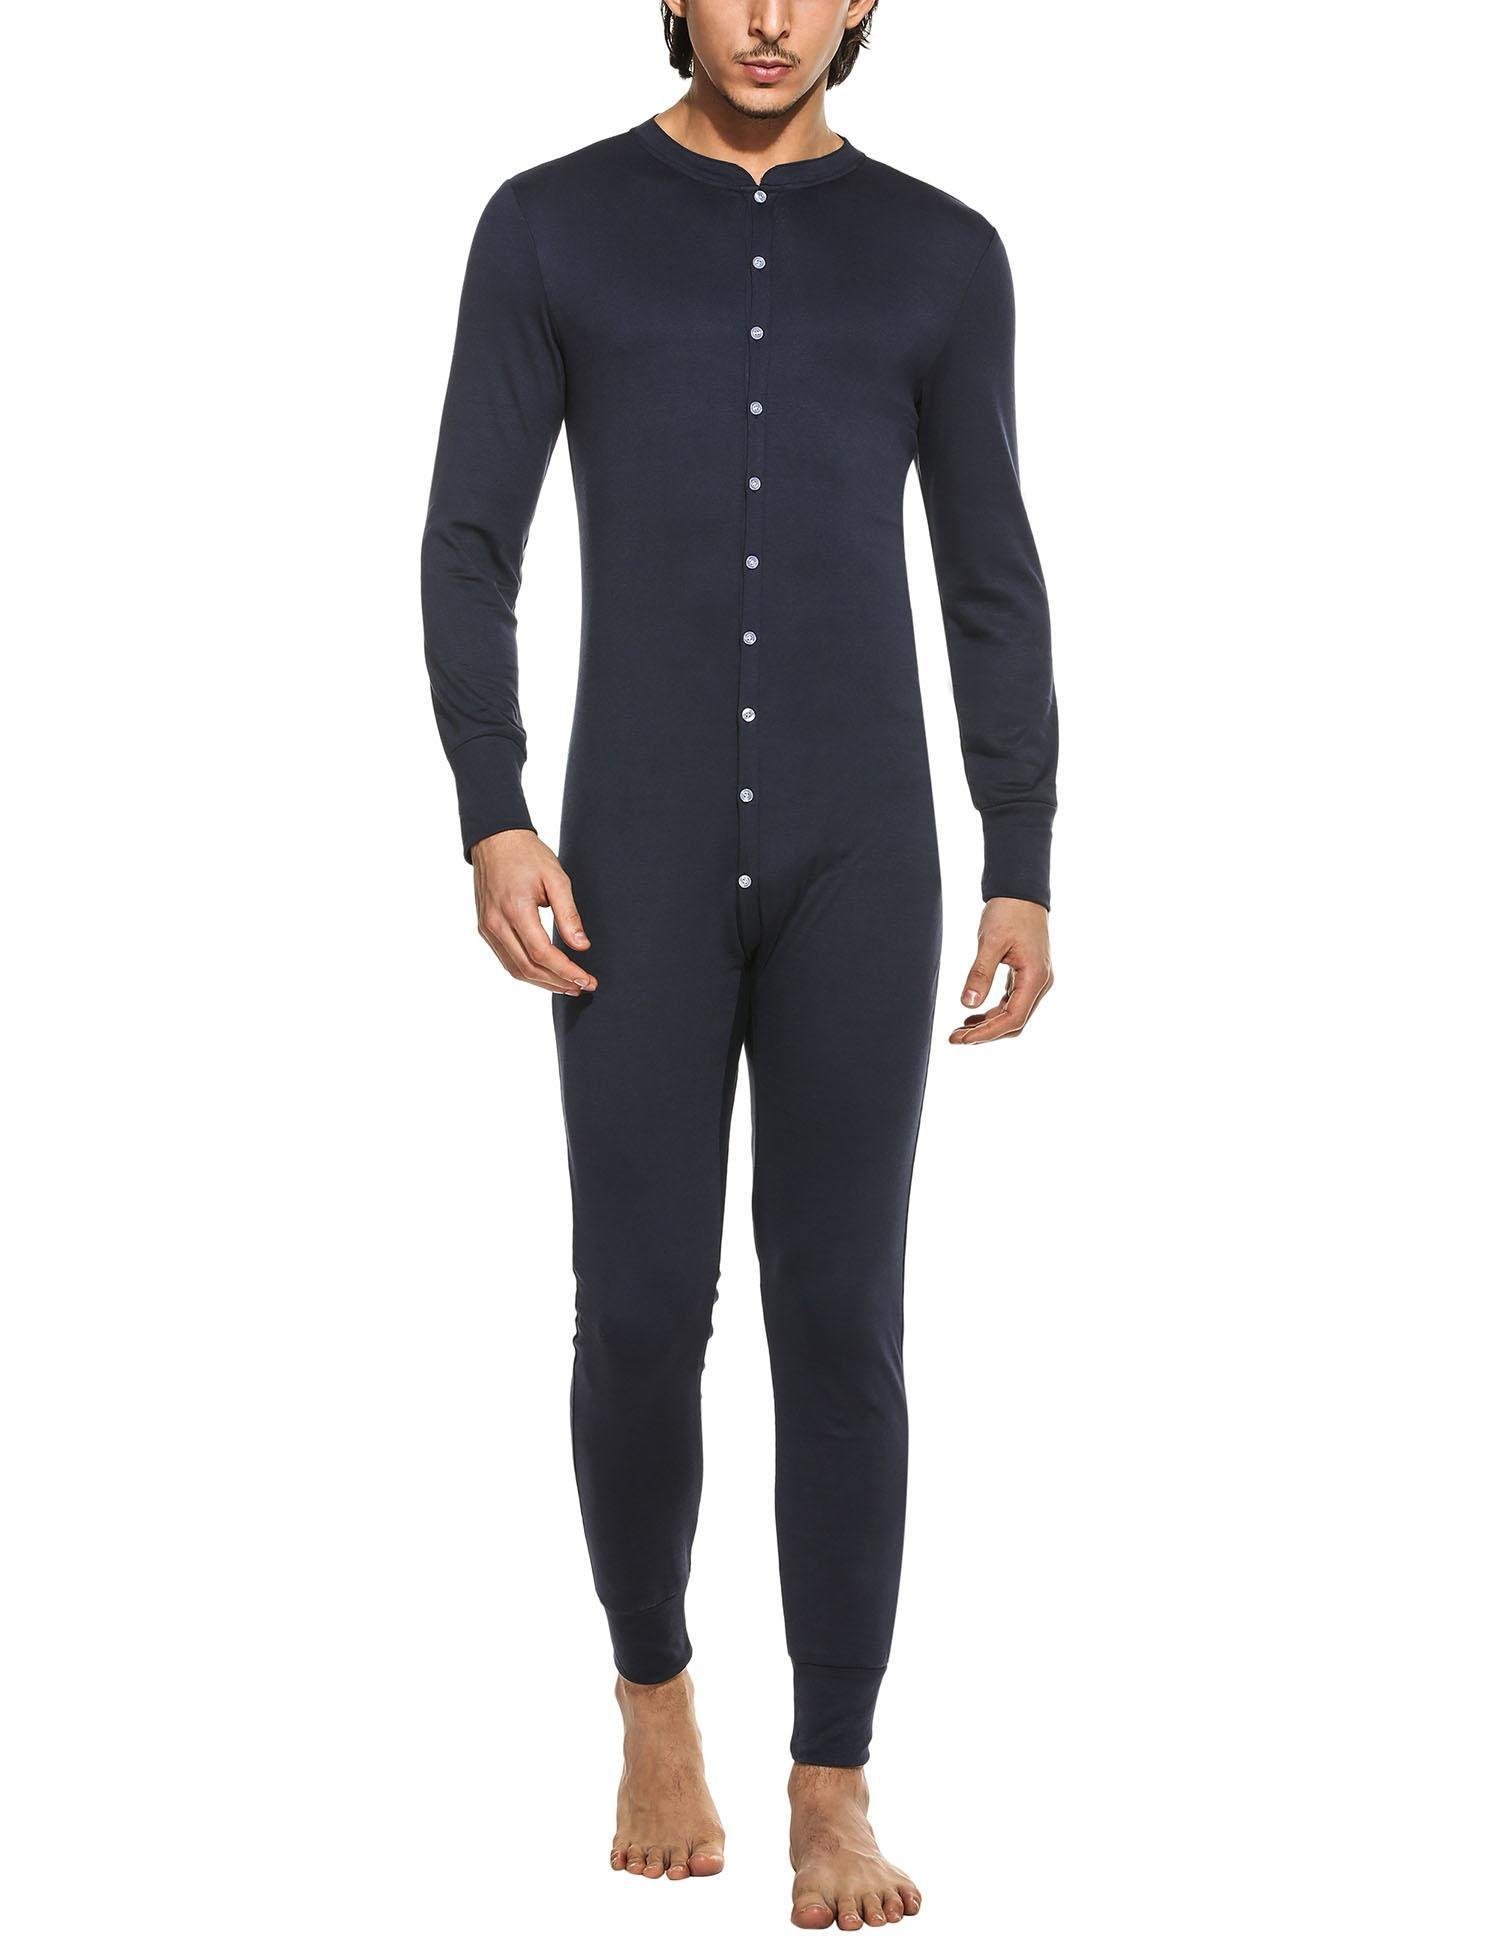 MAXMODA Men's Full Button Front Base Layer Union Suit Navy XL